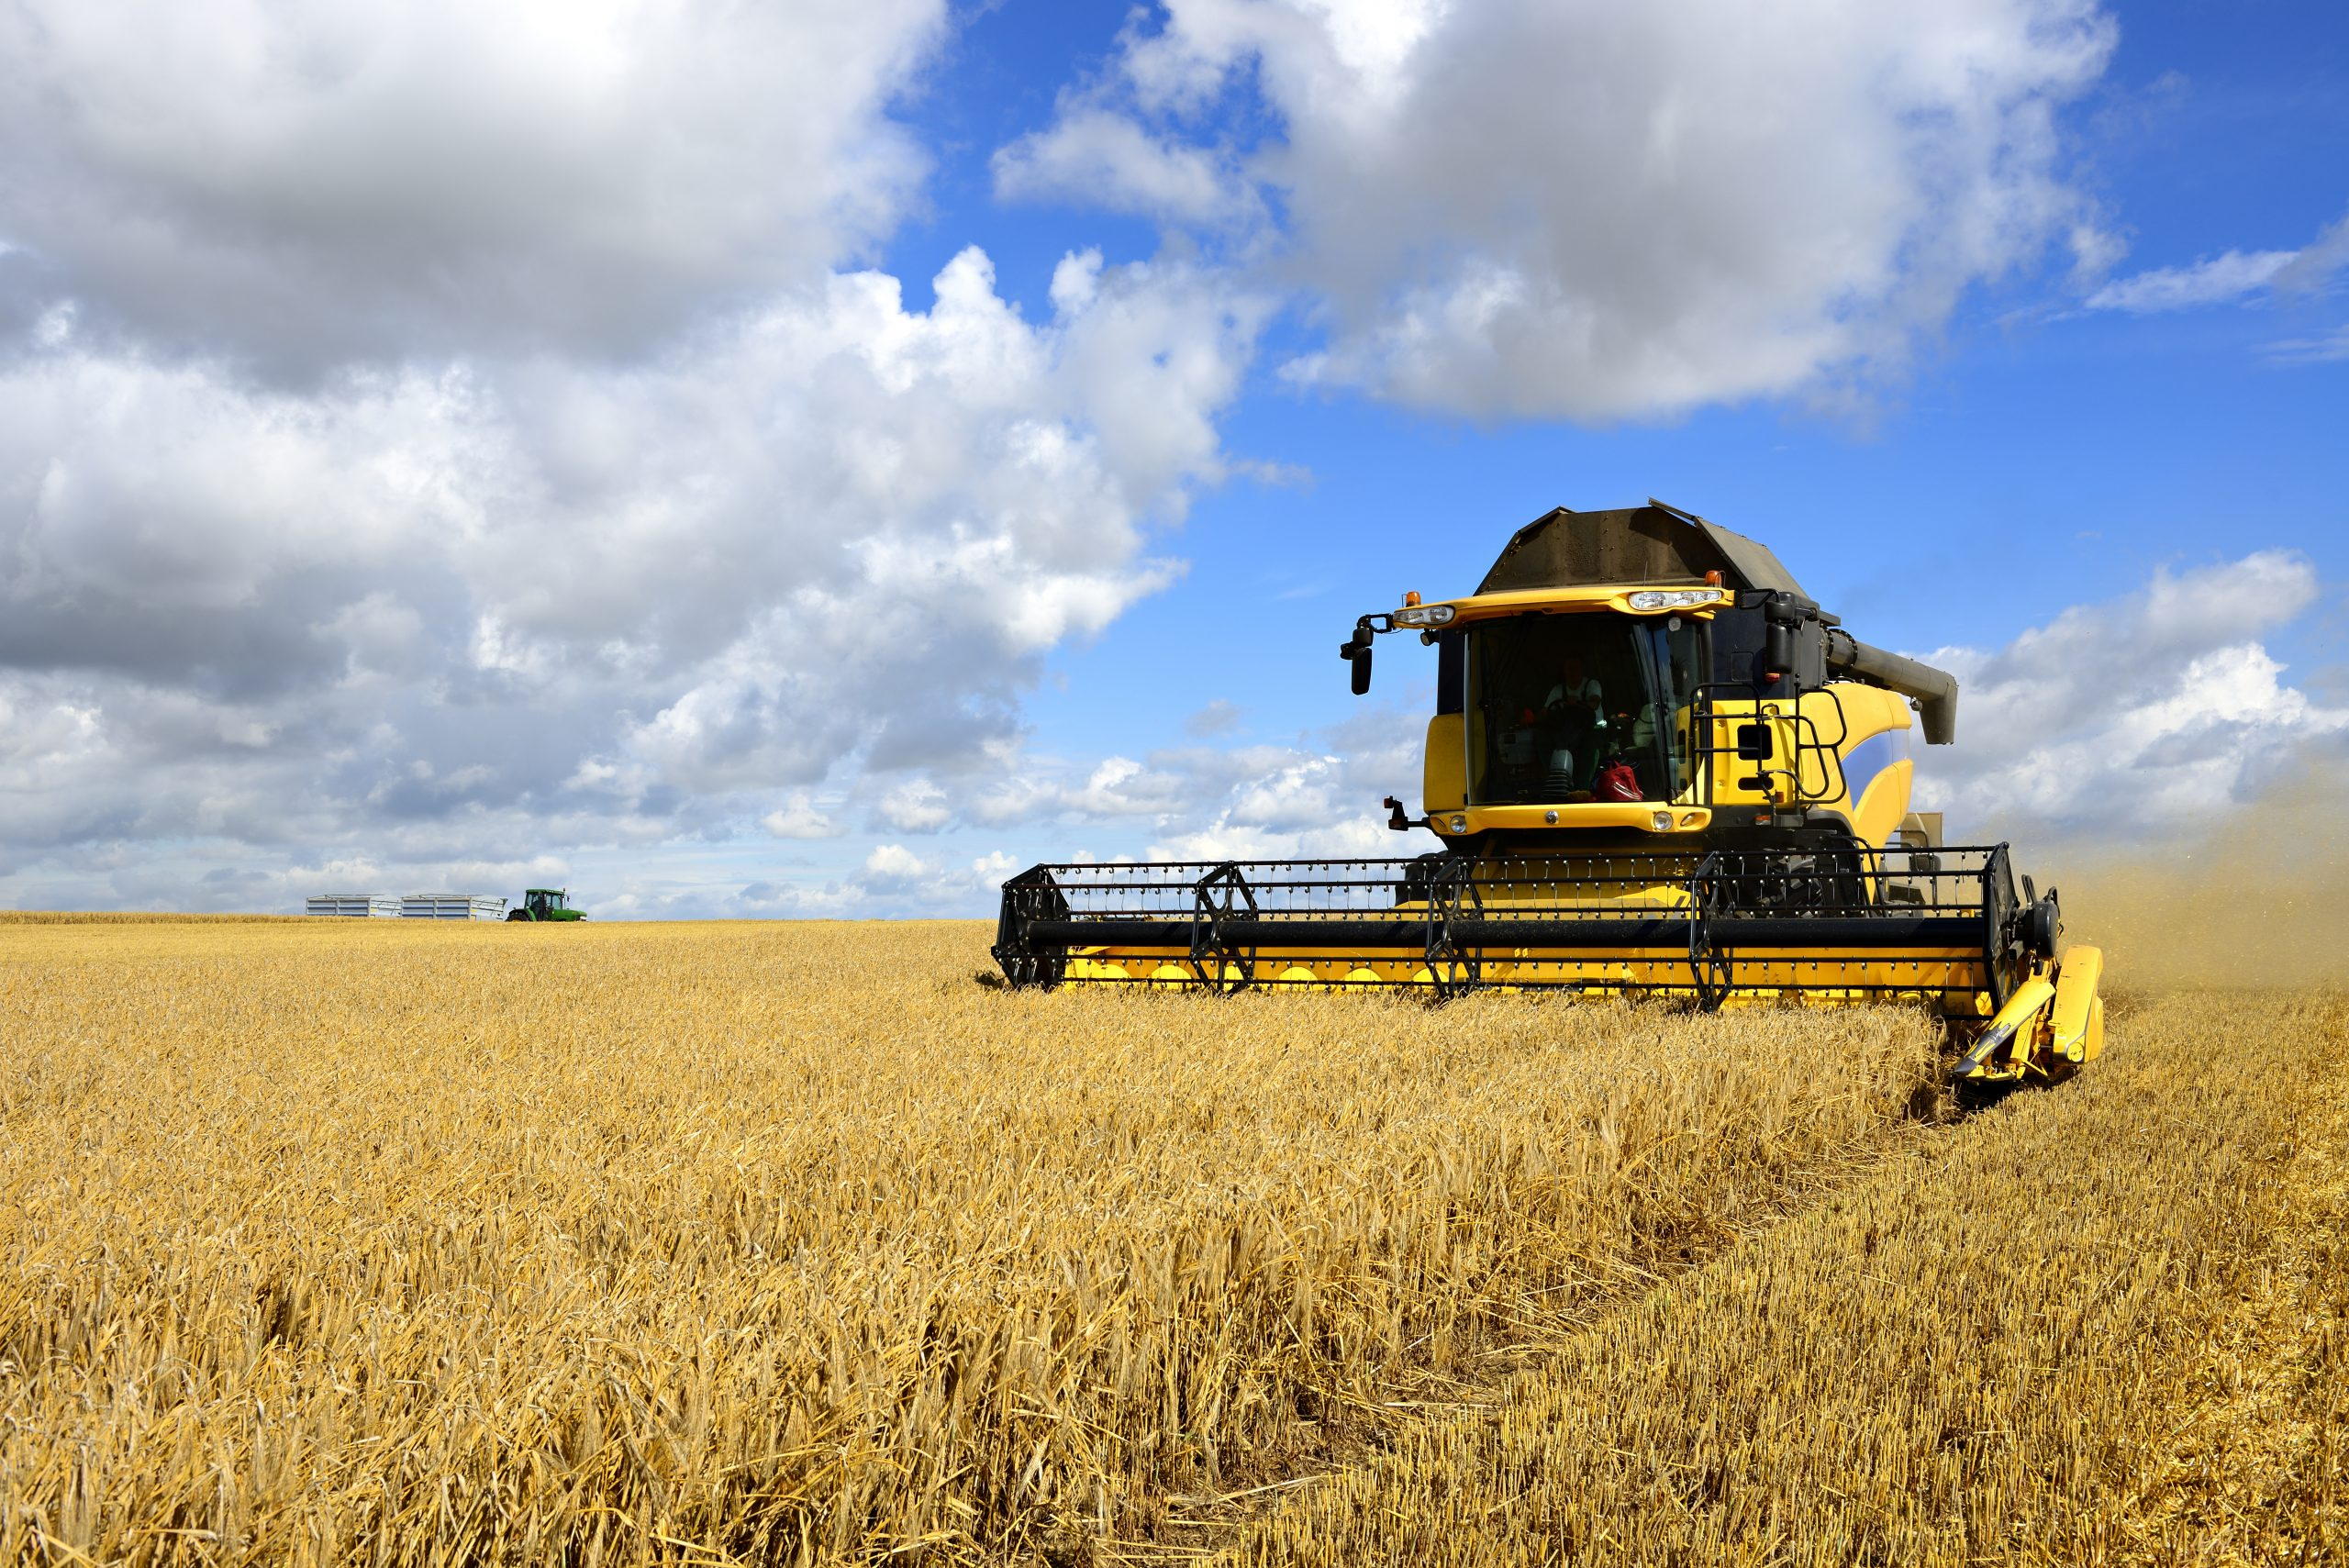 Combine Harvester and Tractor in Barley Field during Harvest: Heineken UK launches low carbon barley trial